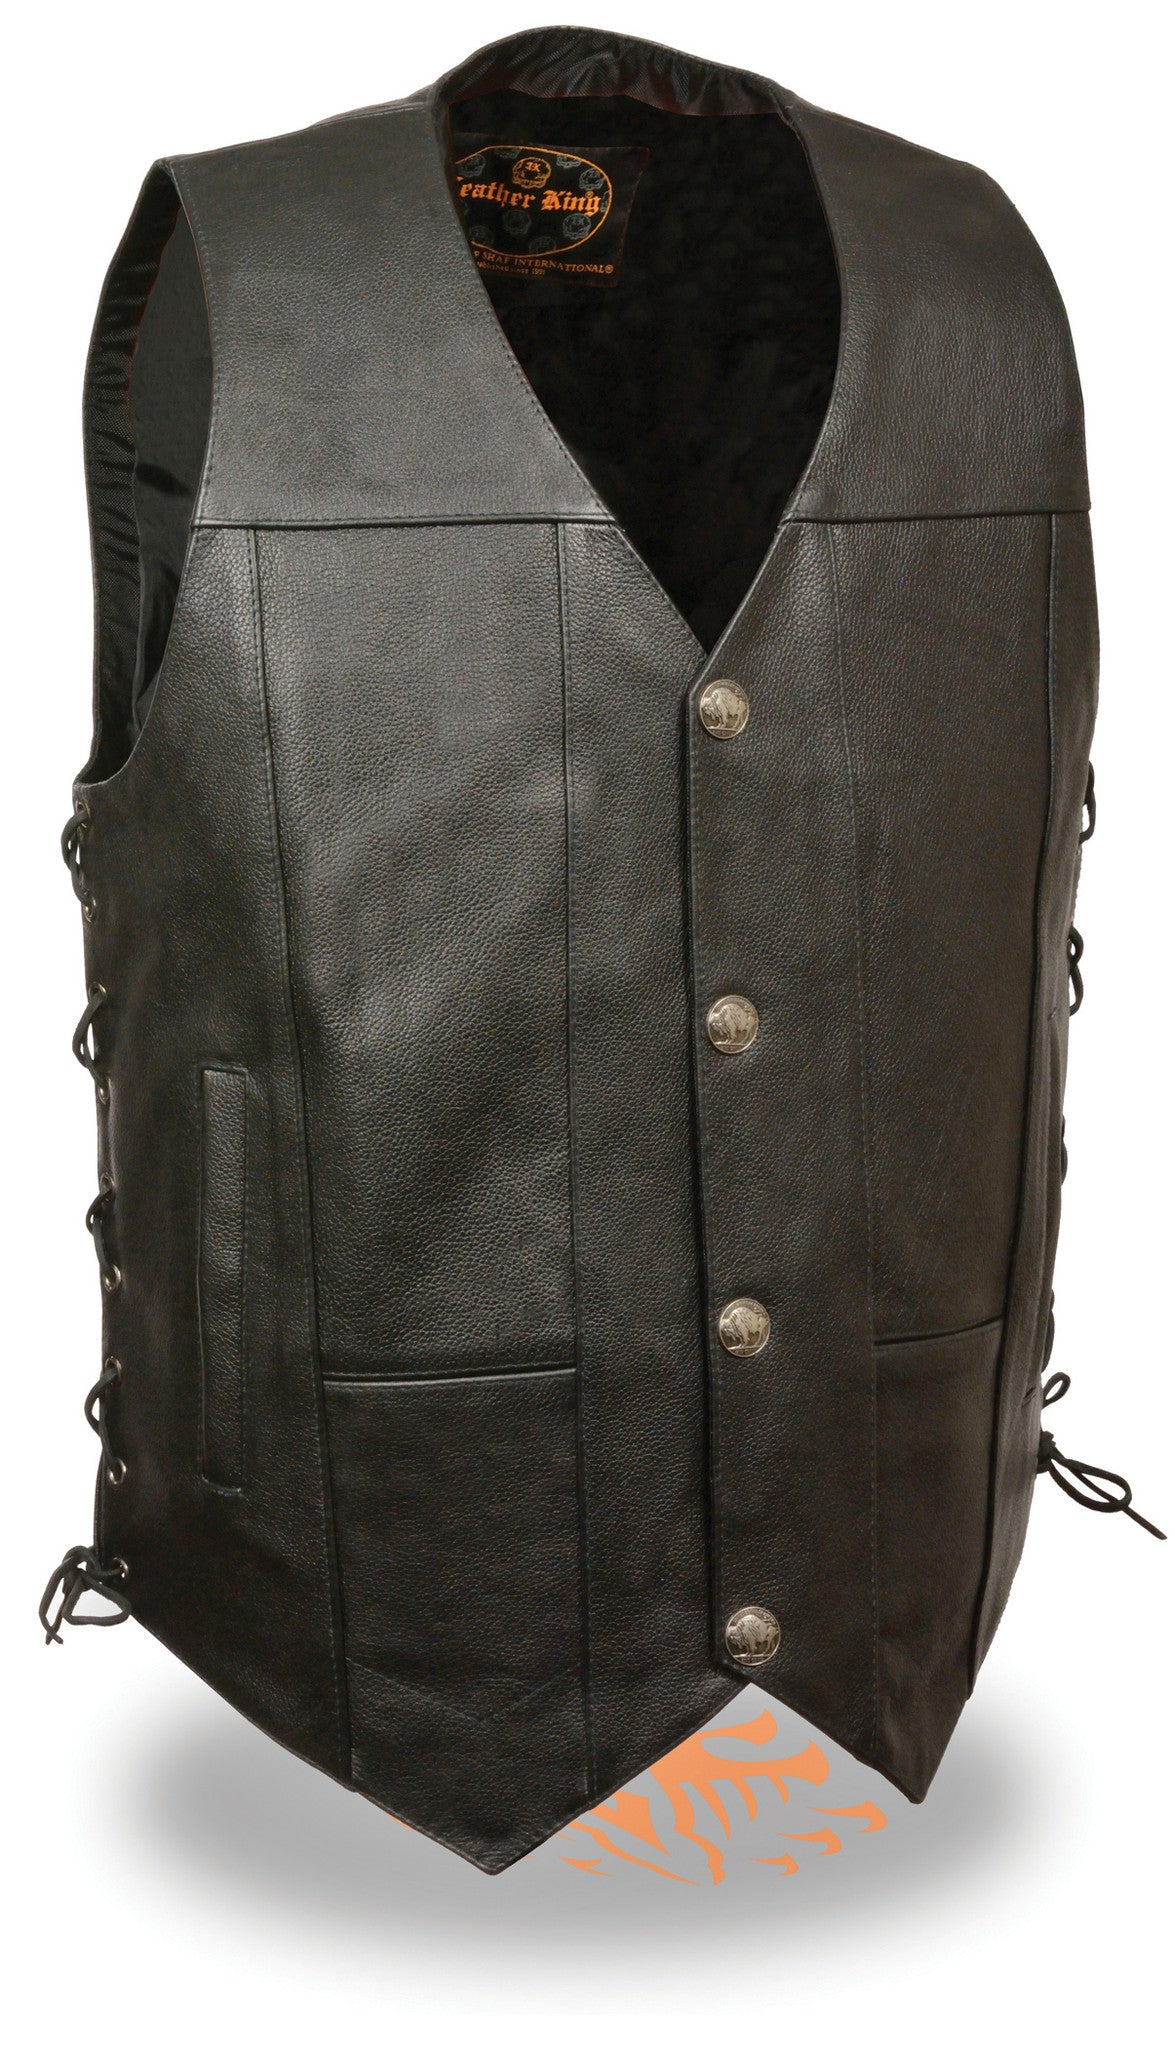 LEATHER VEST W/ BUFFALO SNAPS SOFT LEATHER SIDE LACES